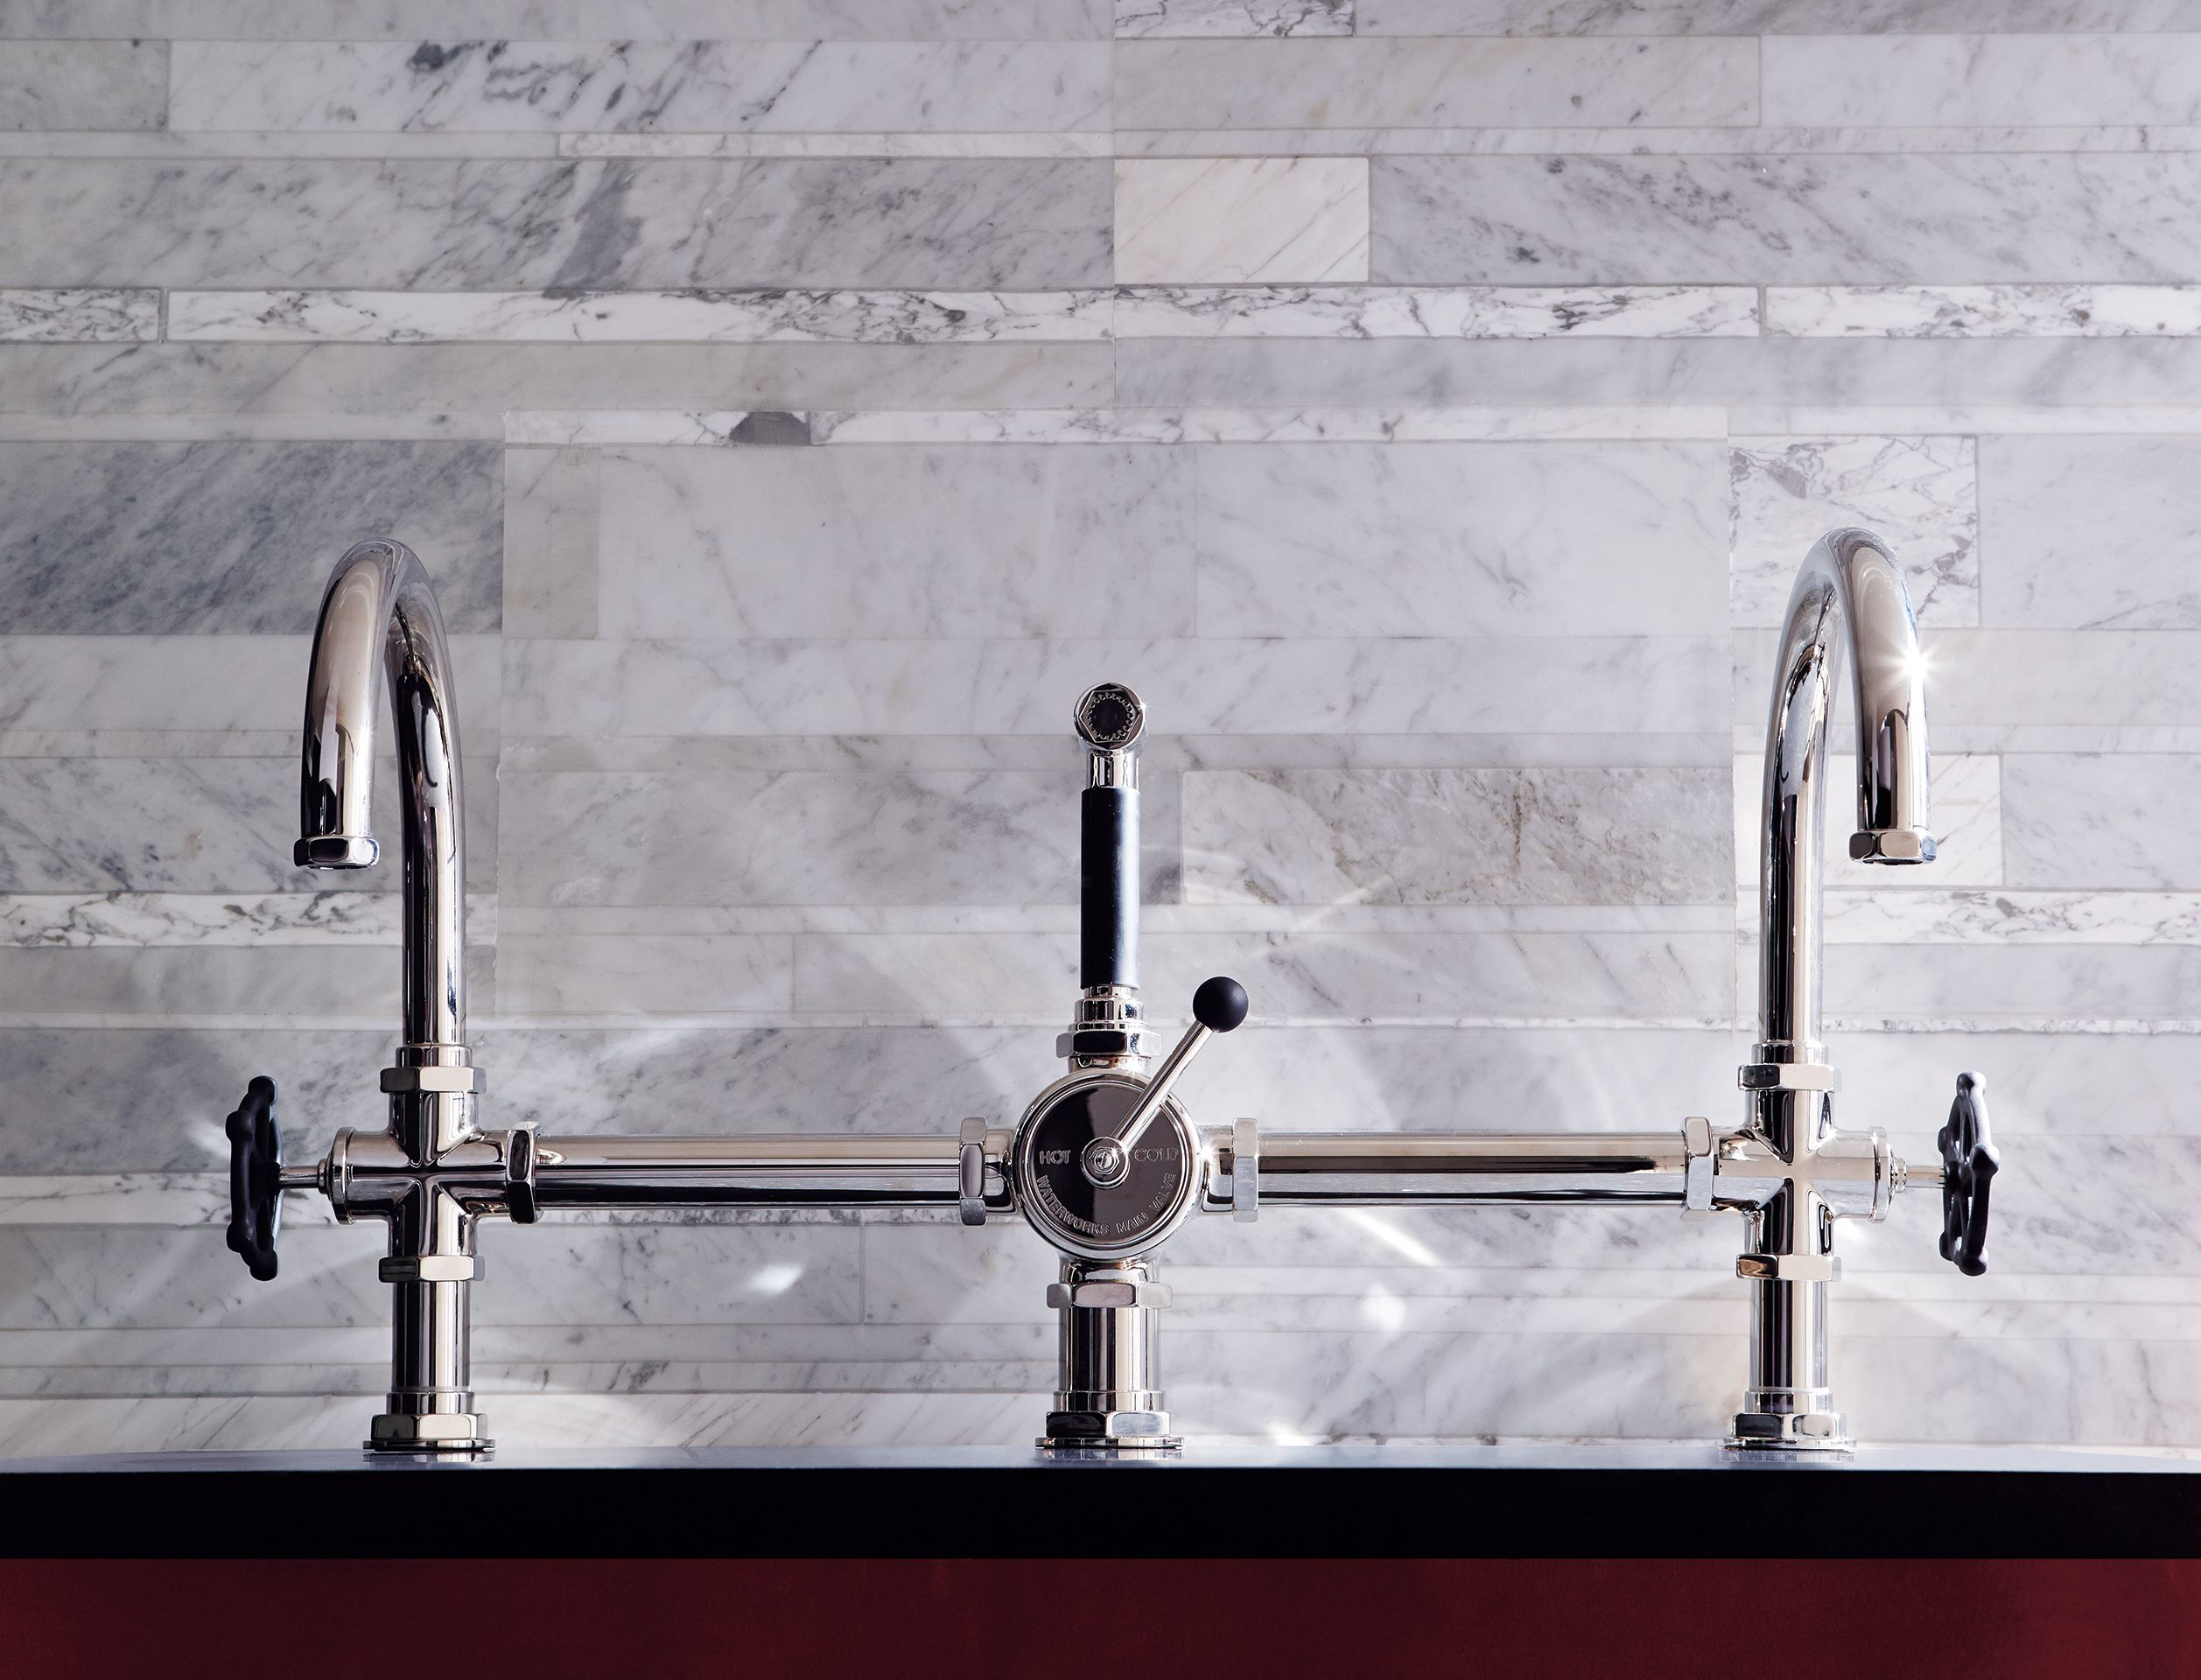 restoration nickel sprayer lever bridge handles with faucet faucets hardware brushed bellevue bn side kitchen brass